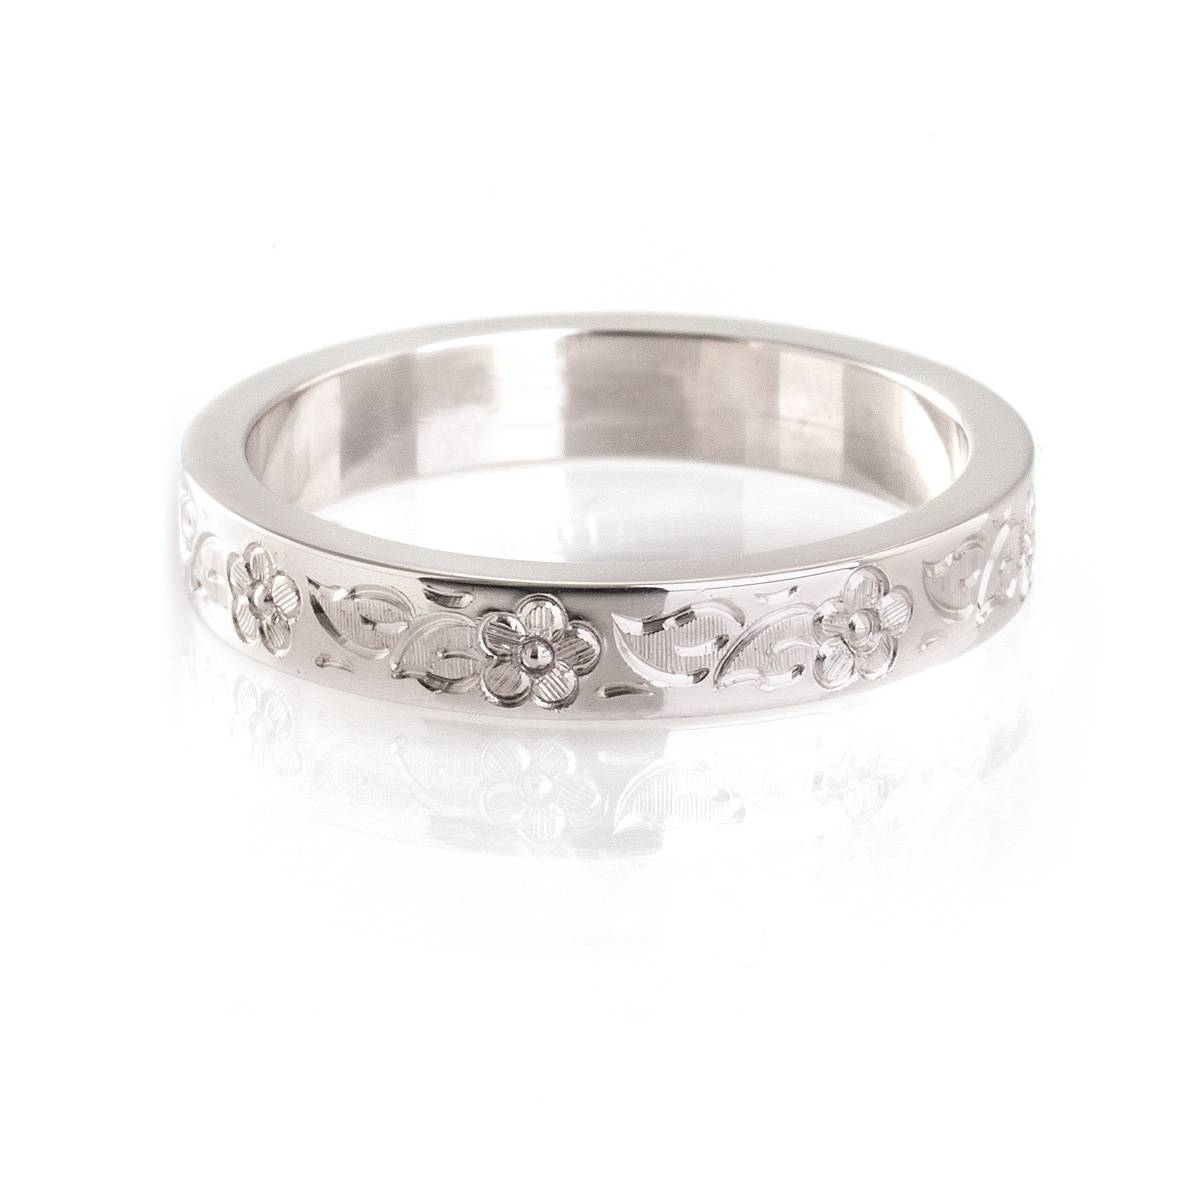 engraved etched vintage rings f uk diamond ladies slim ladys shaped and floral wedding hand pattern ring